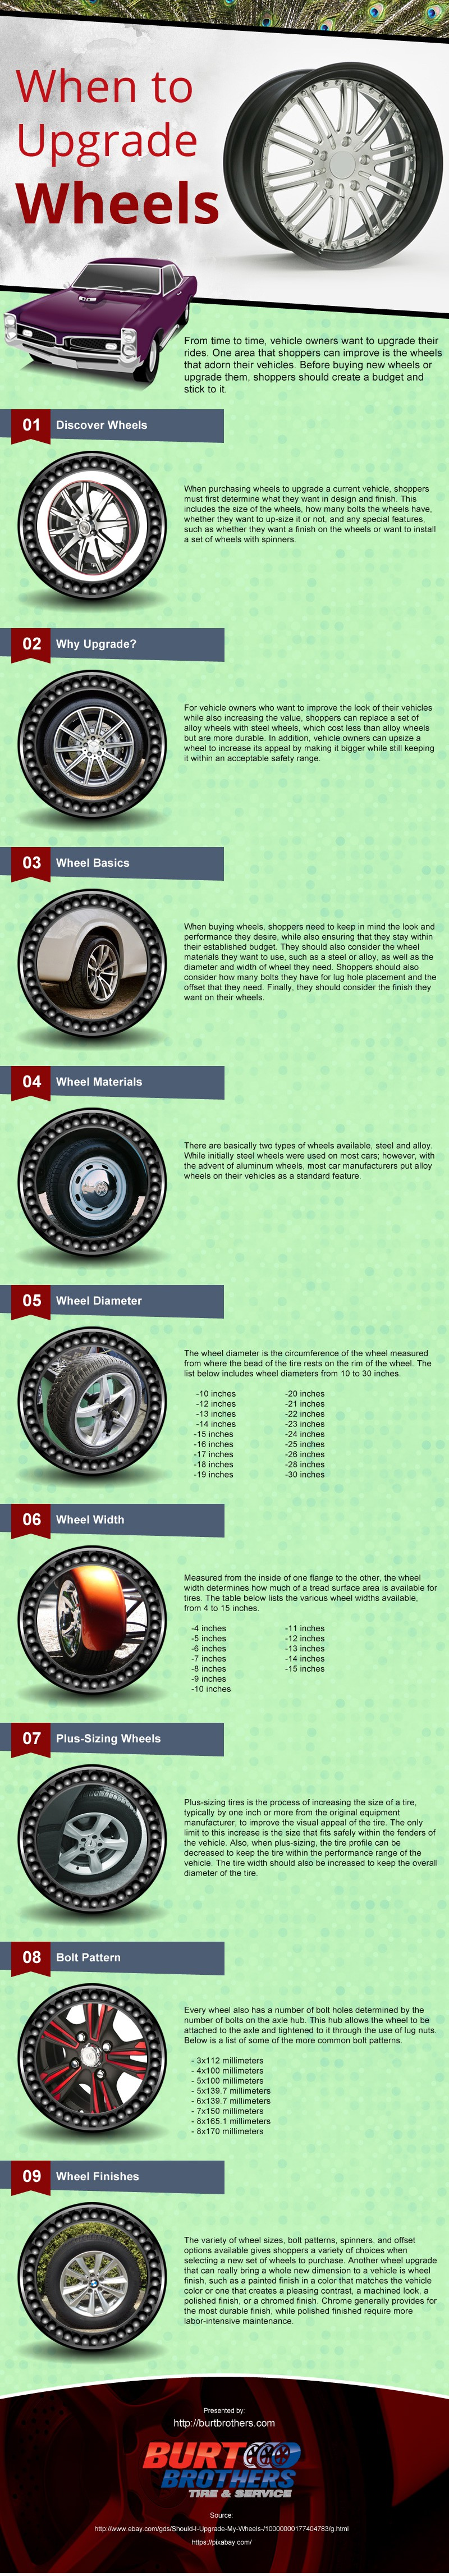 When to upgrade Wheels